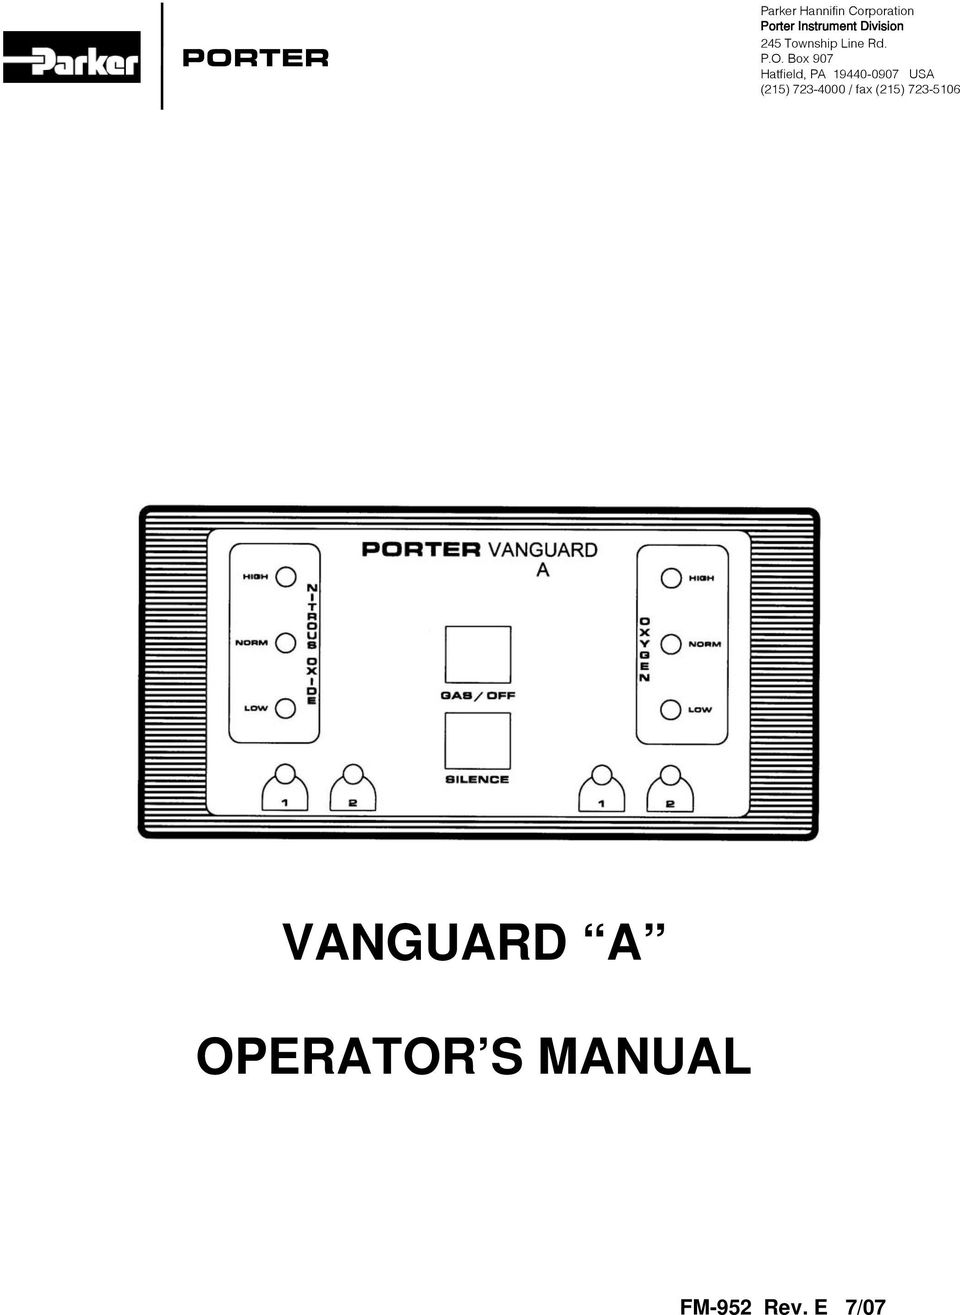 Vanguard A Operator S Manual Porter Fm 952 Rev E 7 07 Pdf Key Wiring Diagram Box 907 Hatfield Pa 19440 0907 Usa 215 723 4000